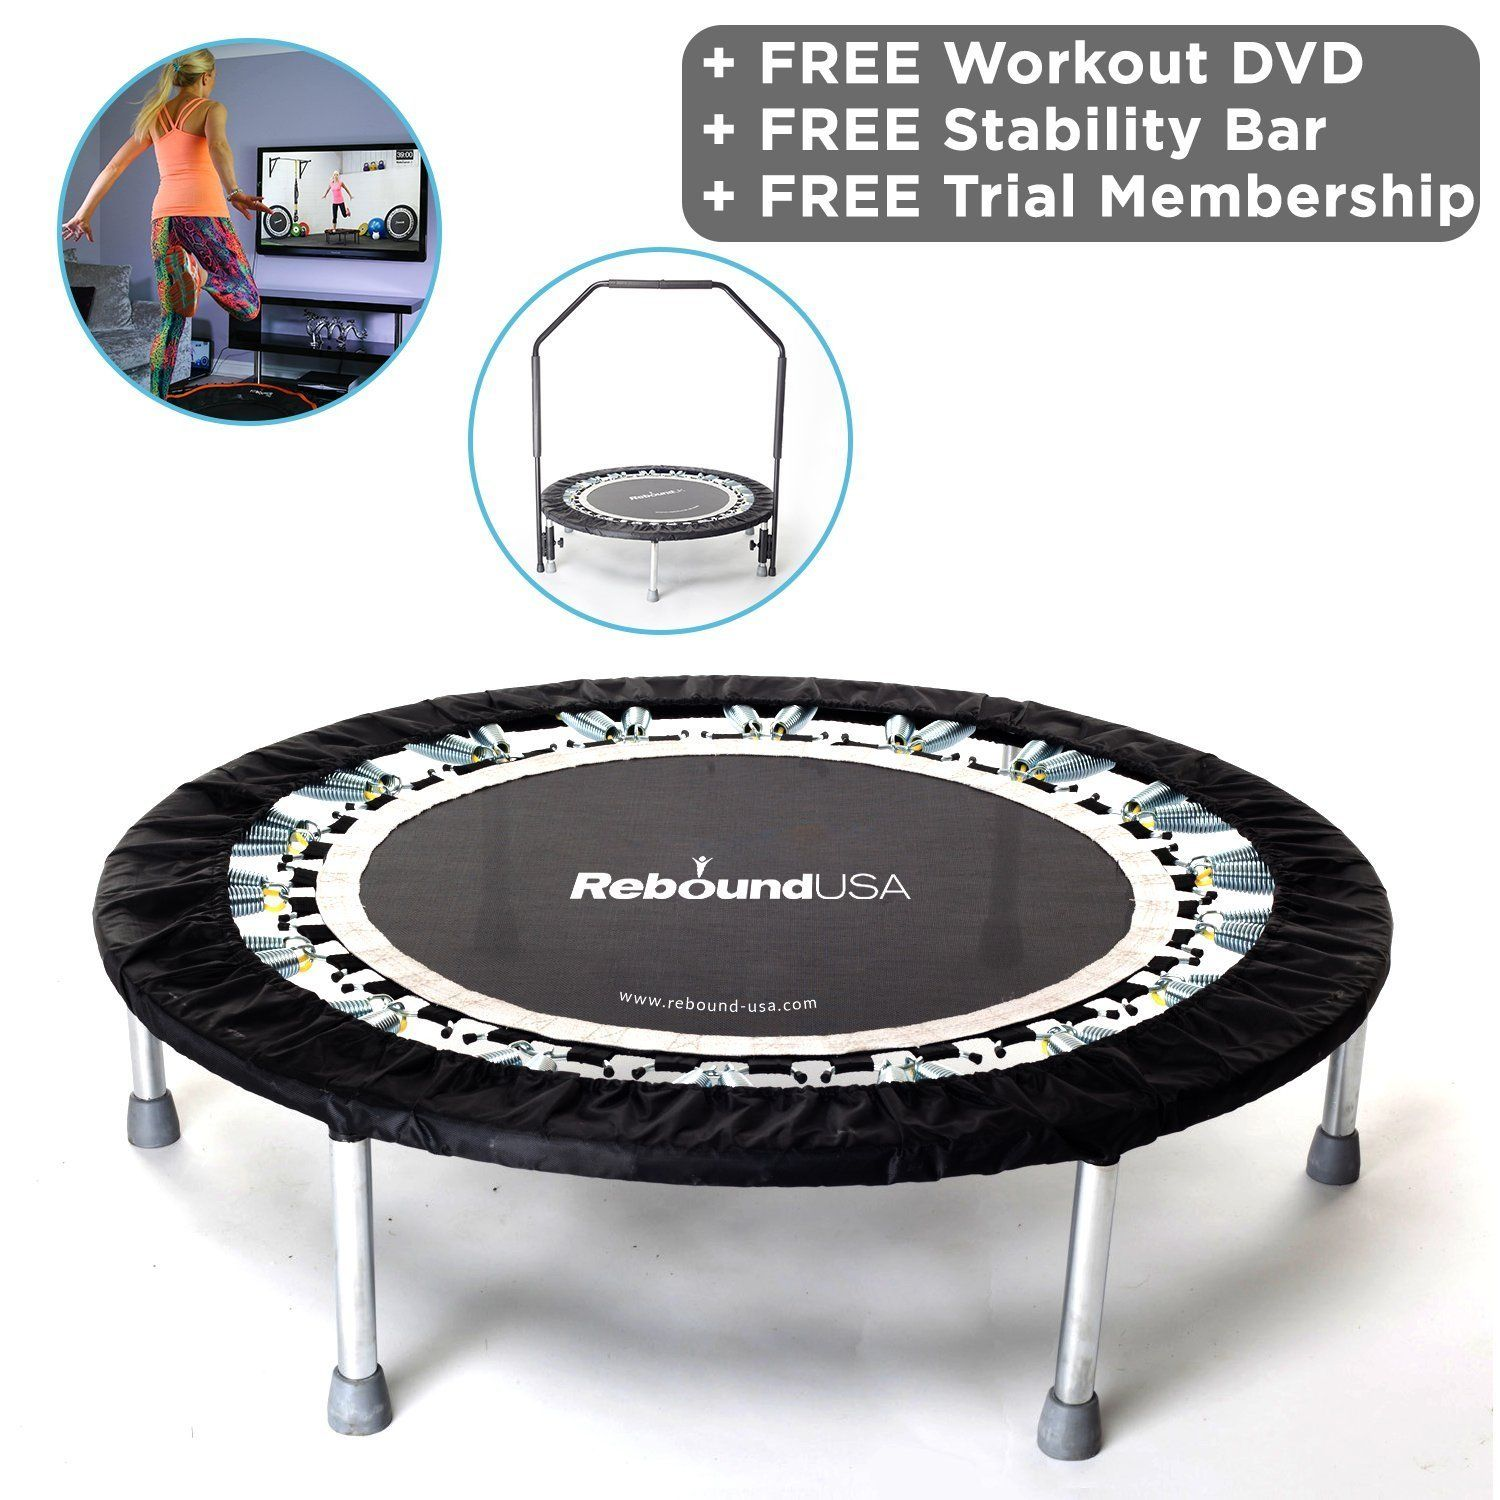 Pin On Home Gyms Fitness Training Equipment